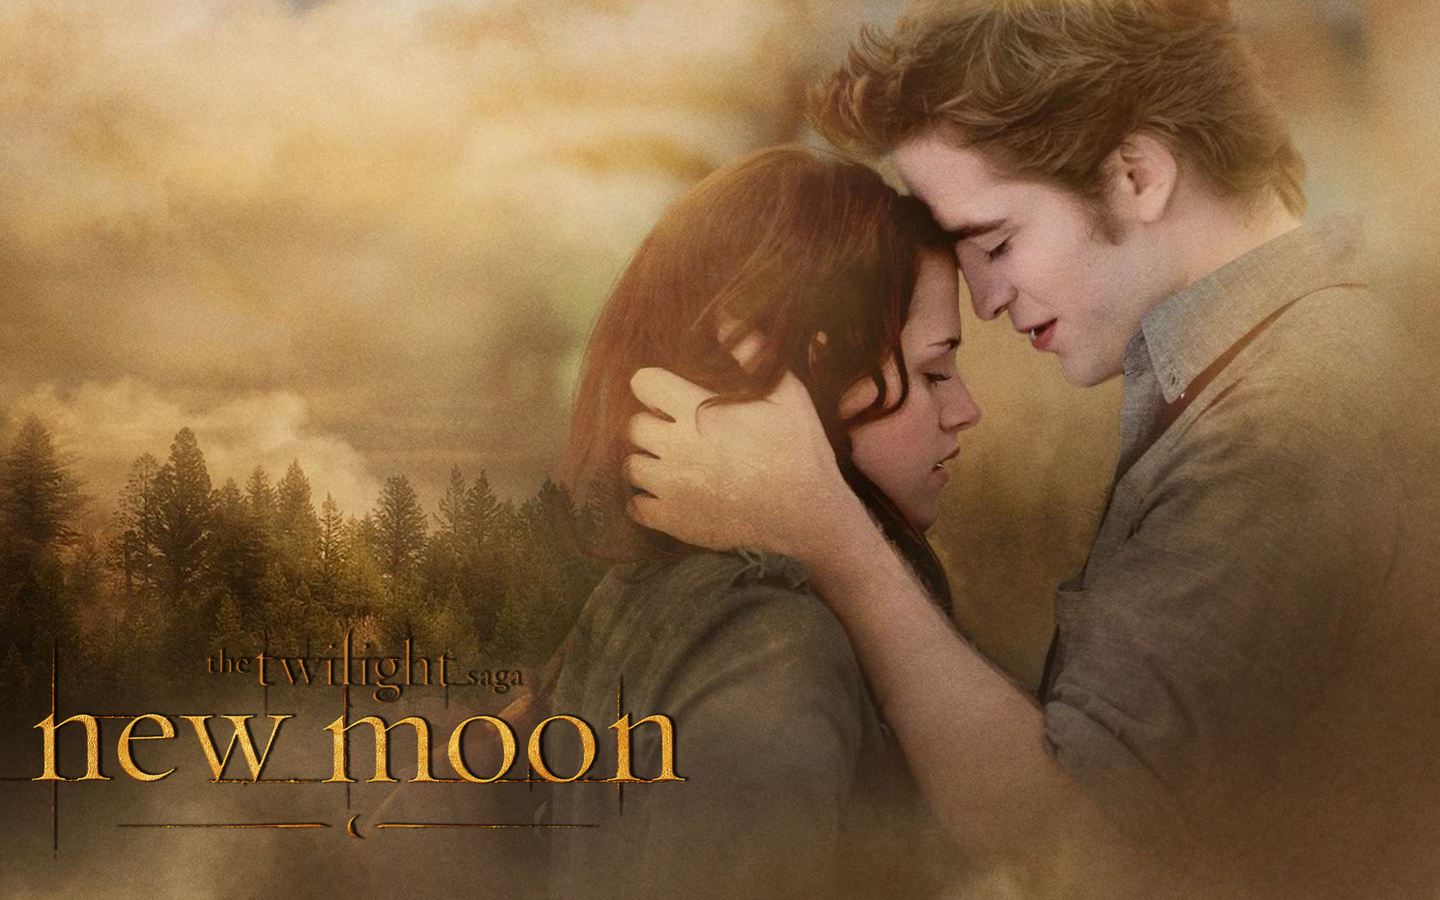 http://images2.fanpop.com/images/photos/7200000/New-Moon-bella-swan-7295666-1440-900.jpg